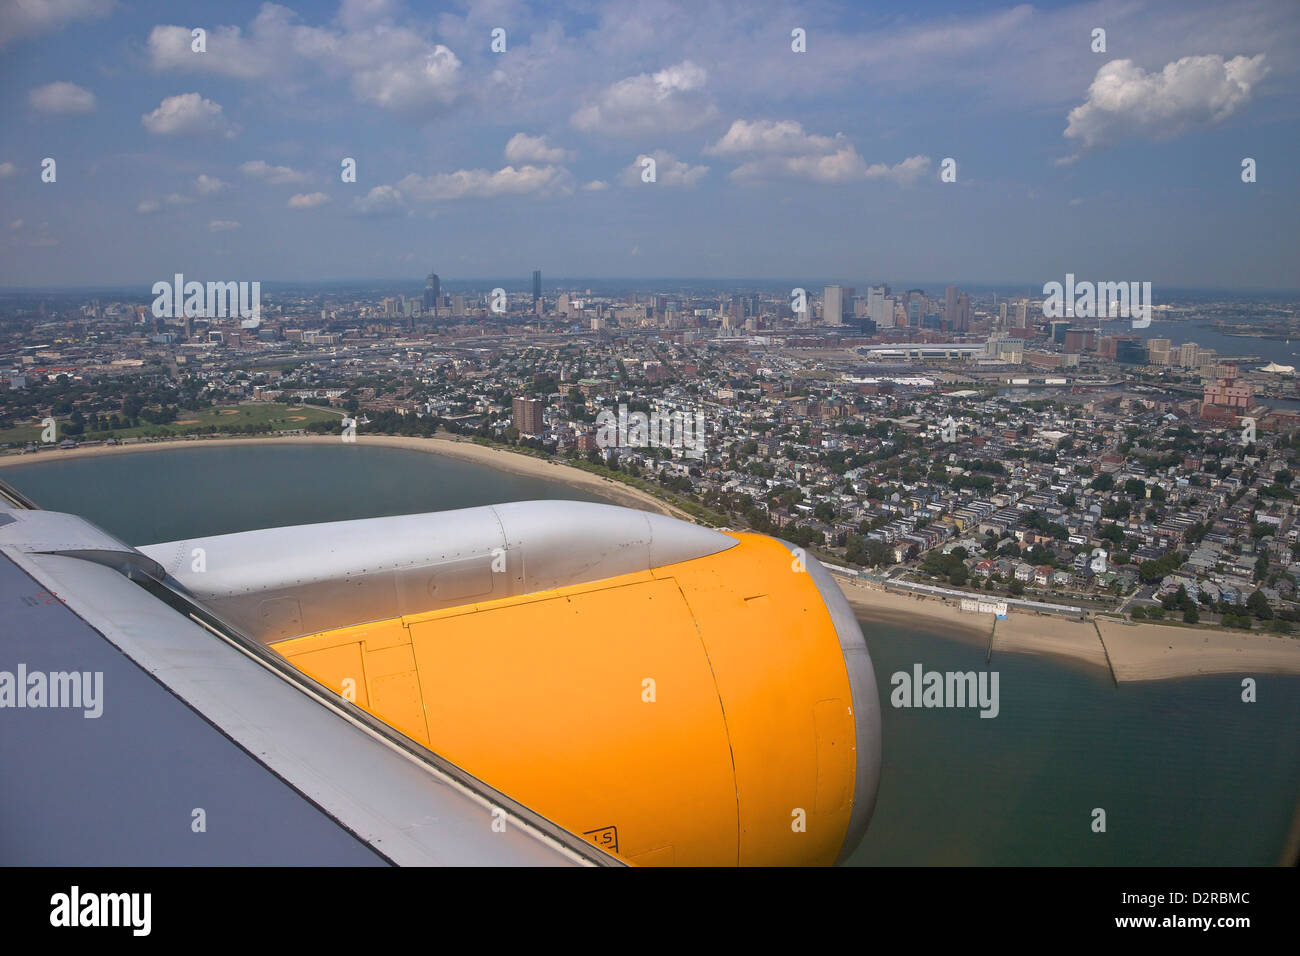 View from Icelandair passenger jet aircraft window over Boston, Massachusetts, New England, USA - Stock Image